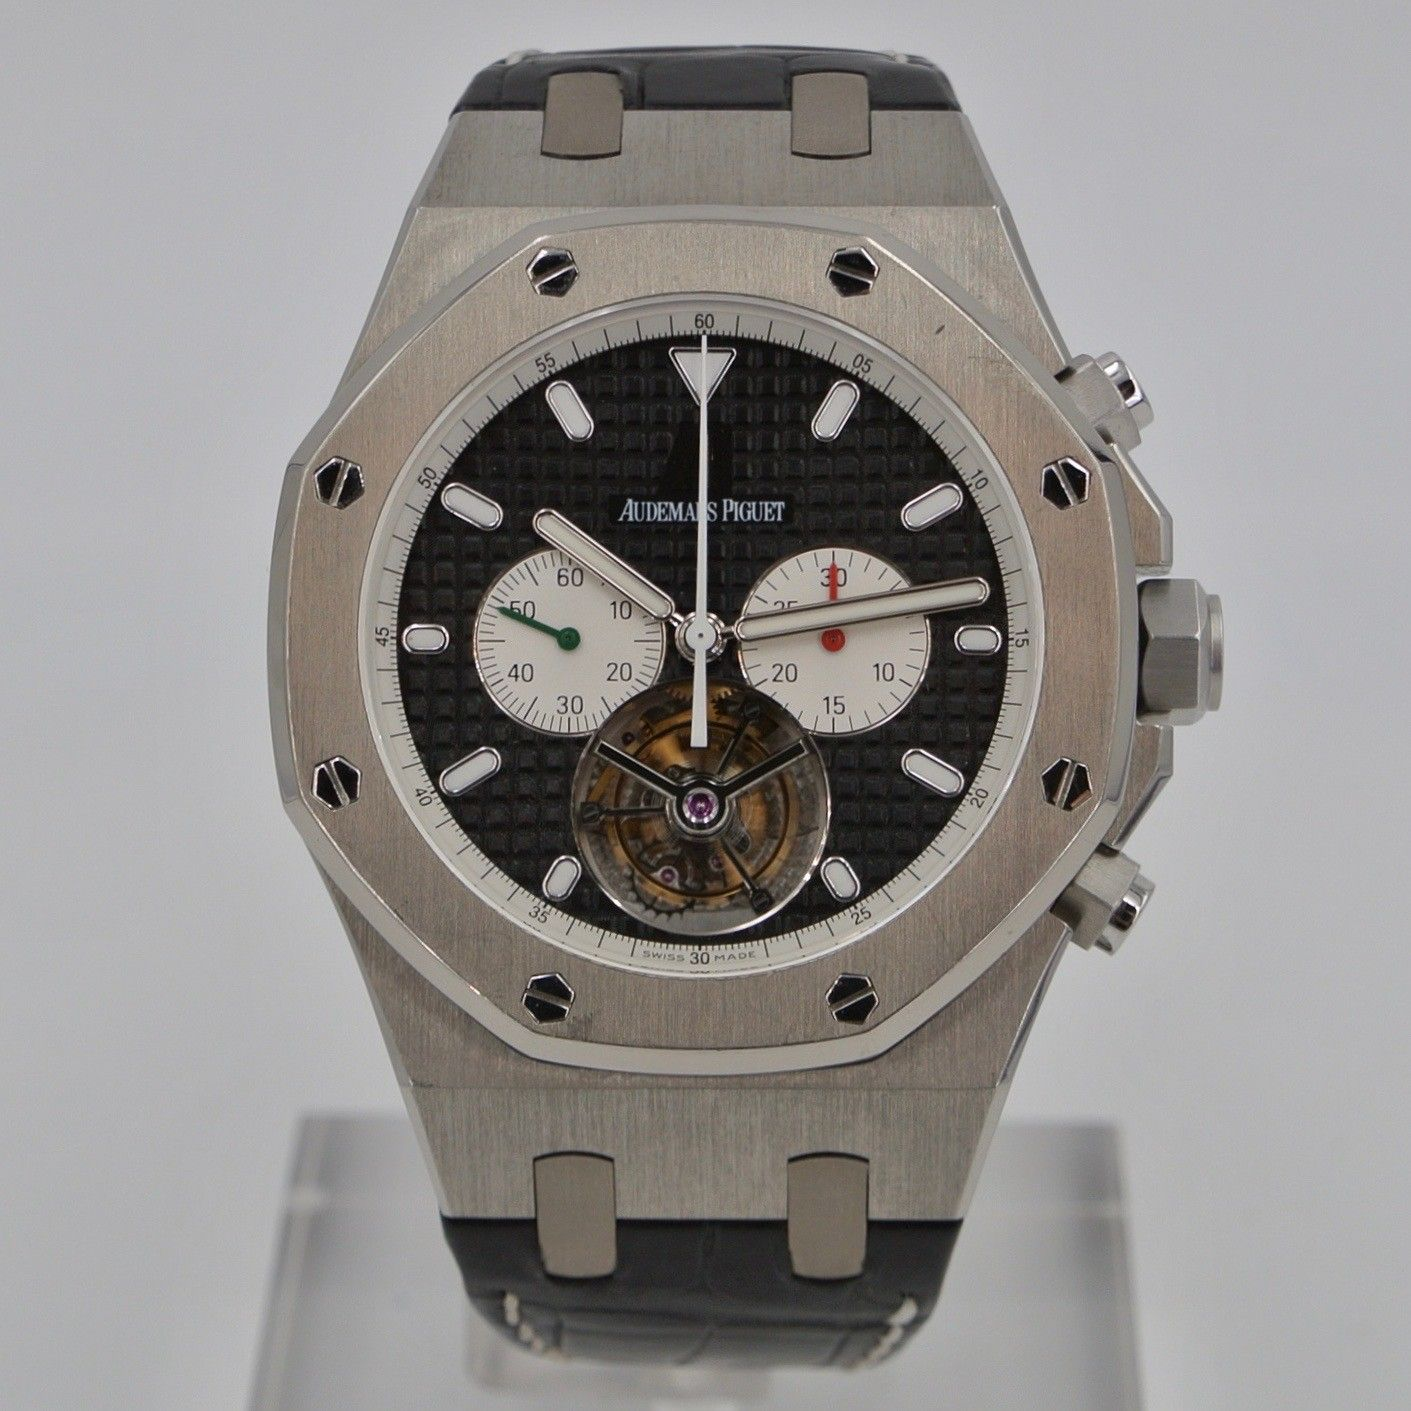 Audemars Piguet Royal Oak Tourbillon Limited edition Titanium 6 pz